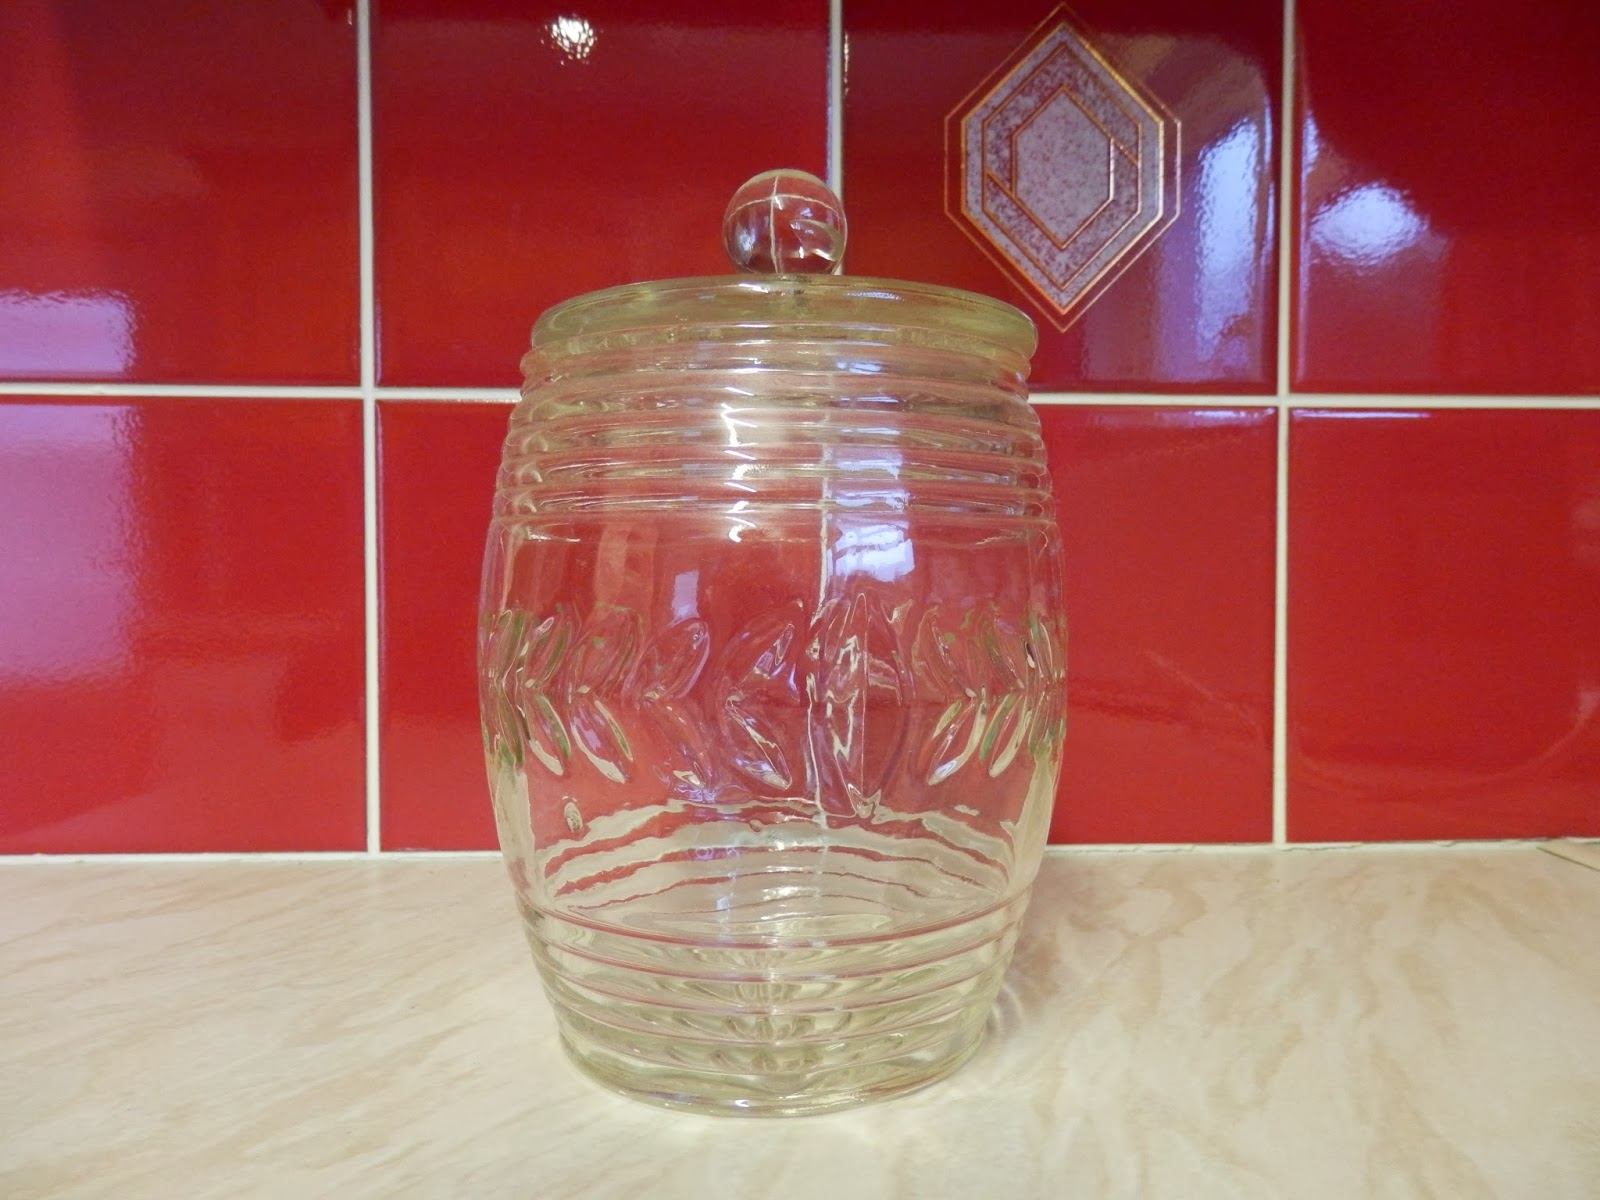 Glass biscuit barrel